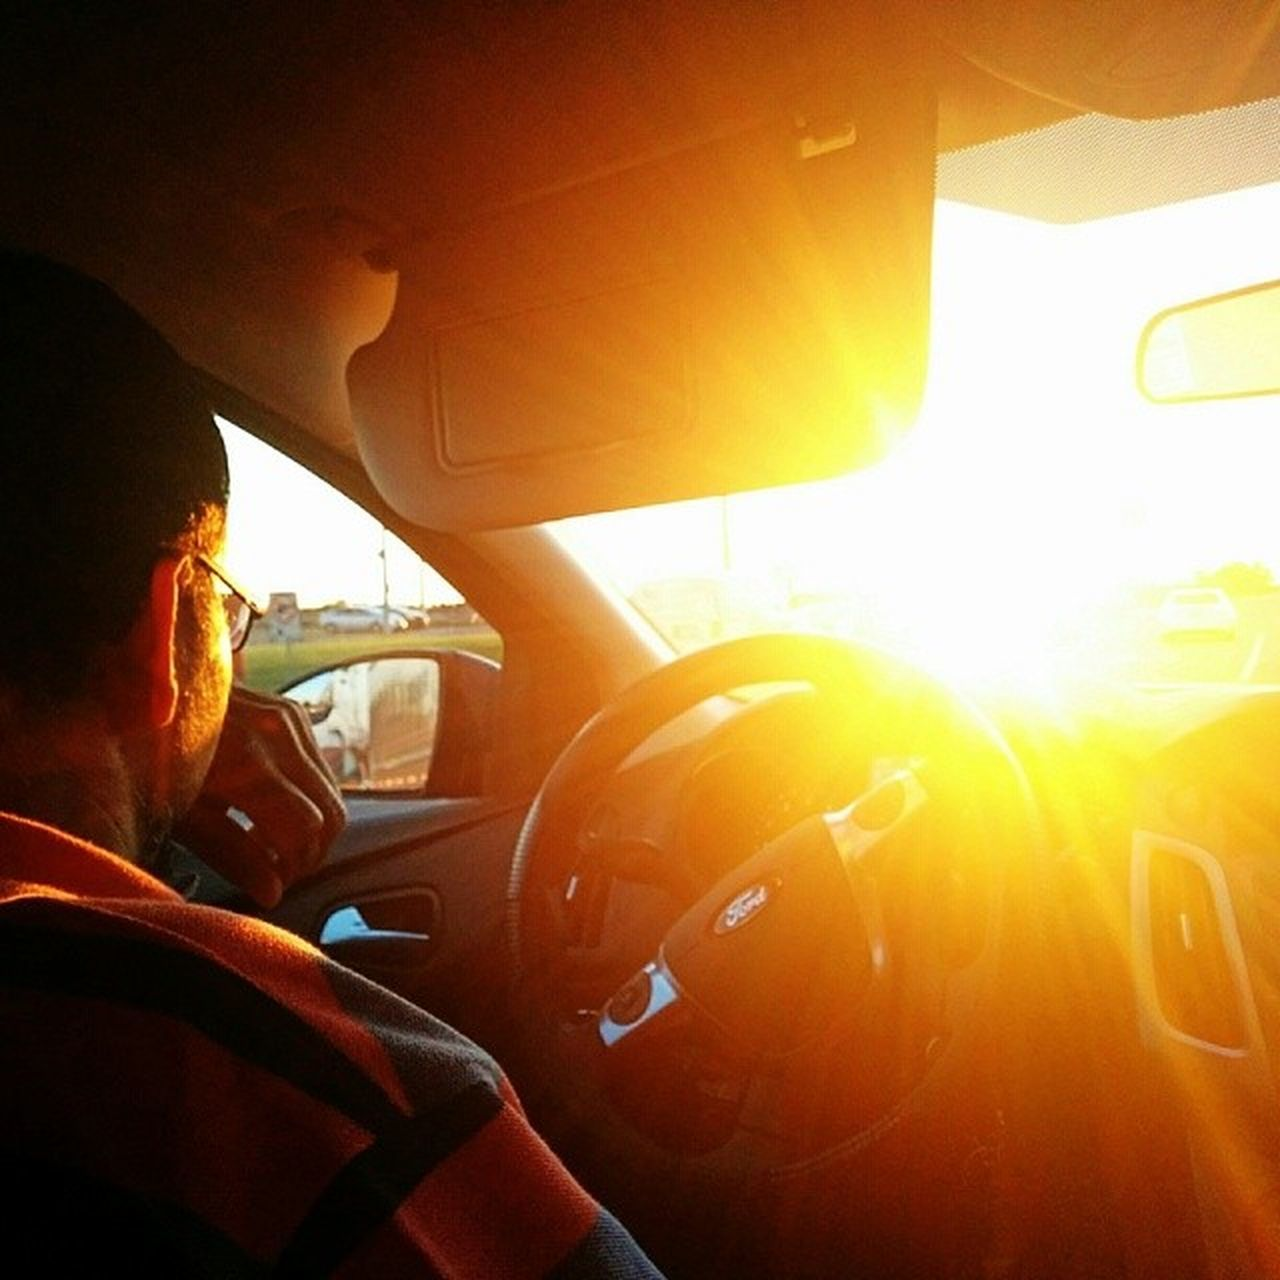 car, vehicle interior, car interior, transportation, land vehicle, driving, mode of transport, steering wheel, real people, one person, windscreen, windshield, men, human hand, dashboard, sunlight, day, lifestyles, outdoors, close-up, people